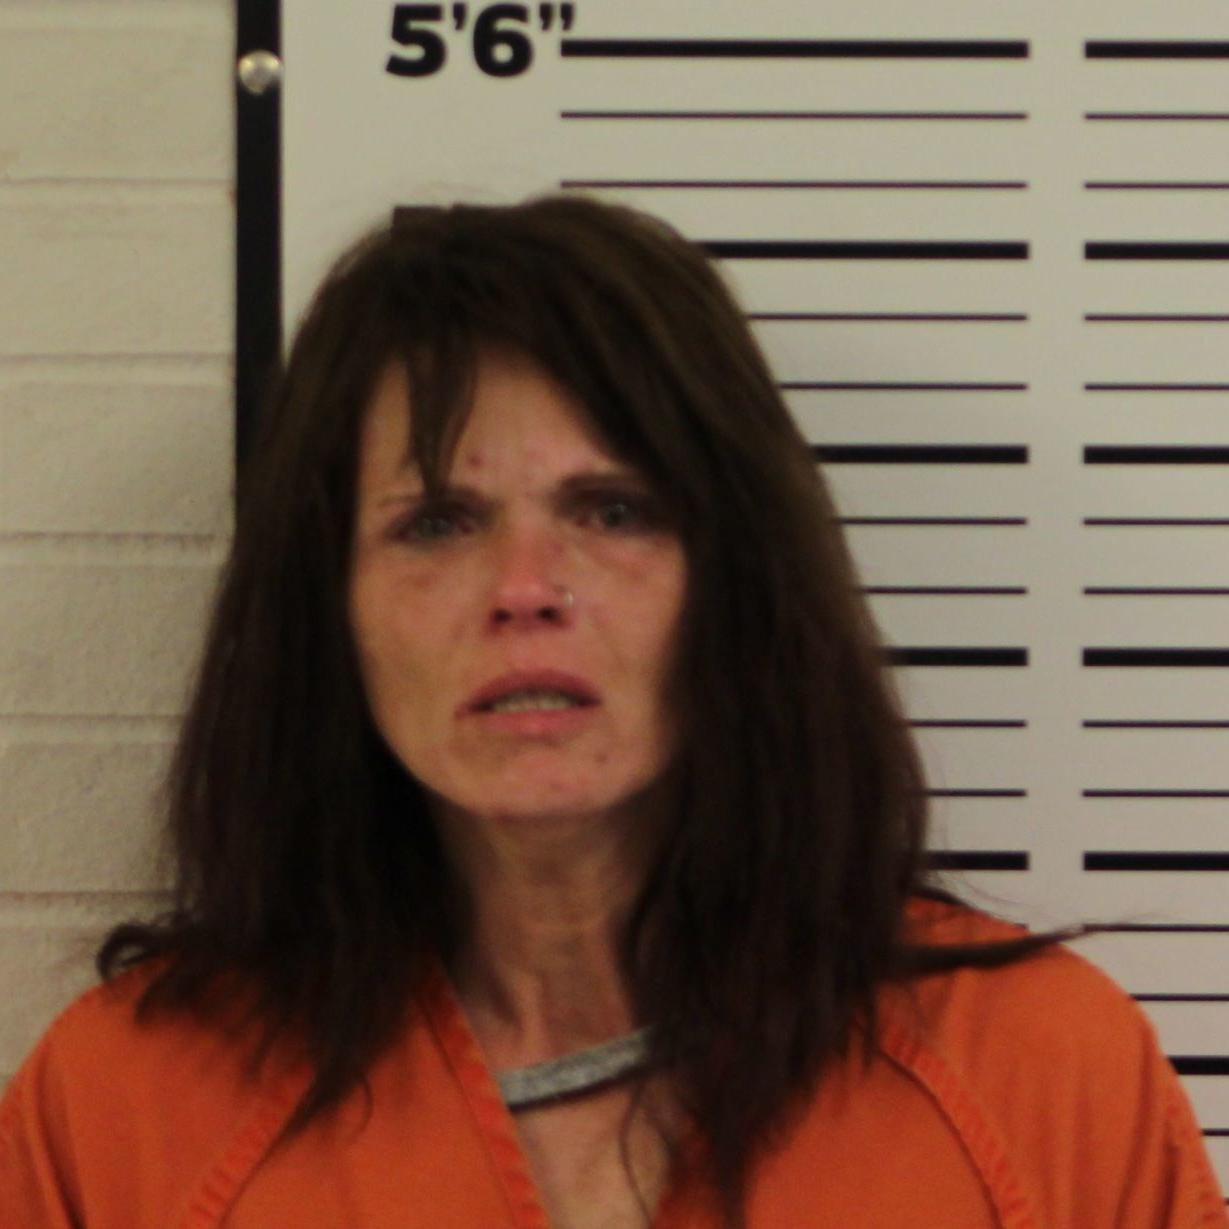 Wife charged with murder     dailyjournalonline com